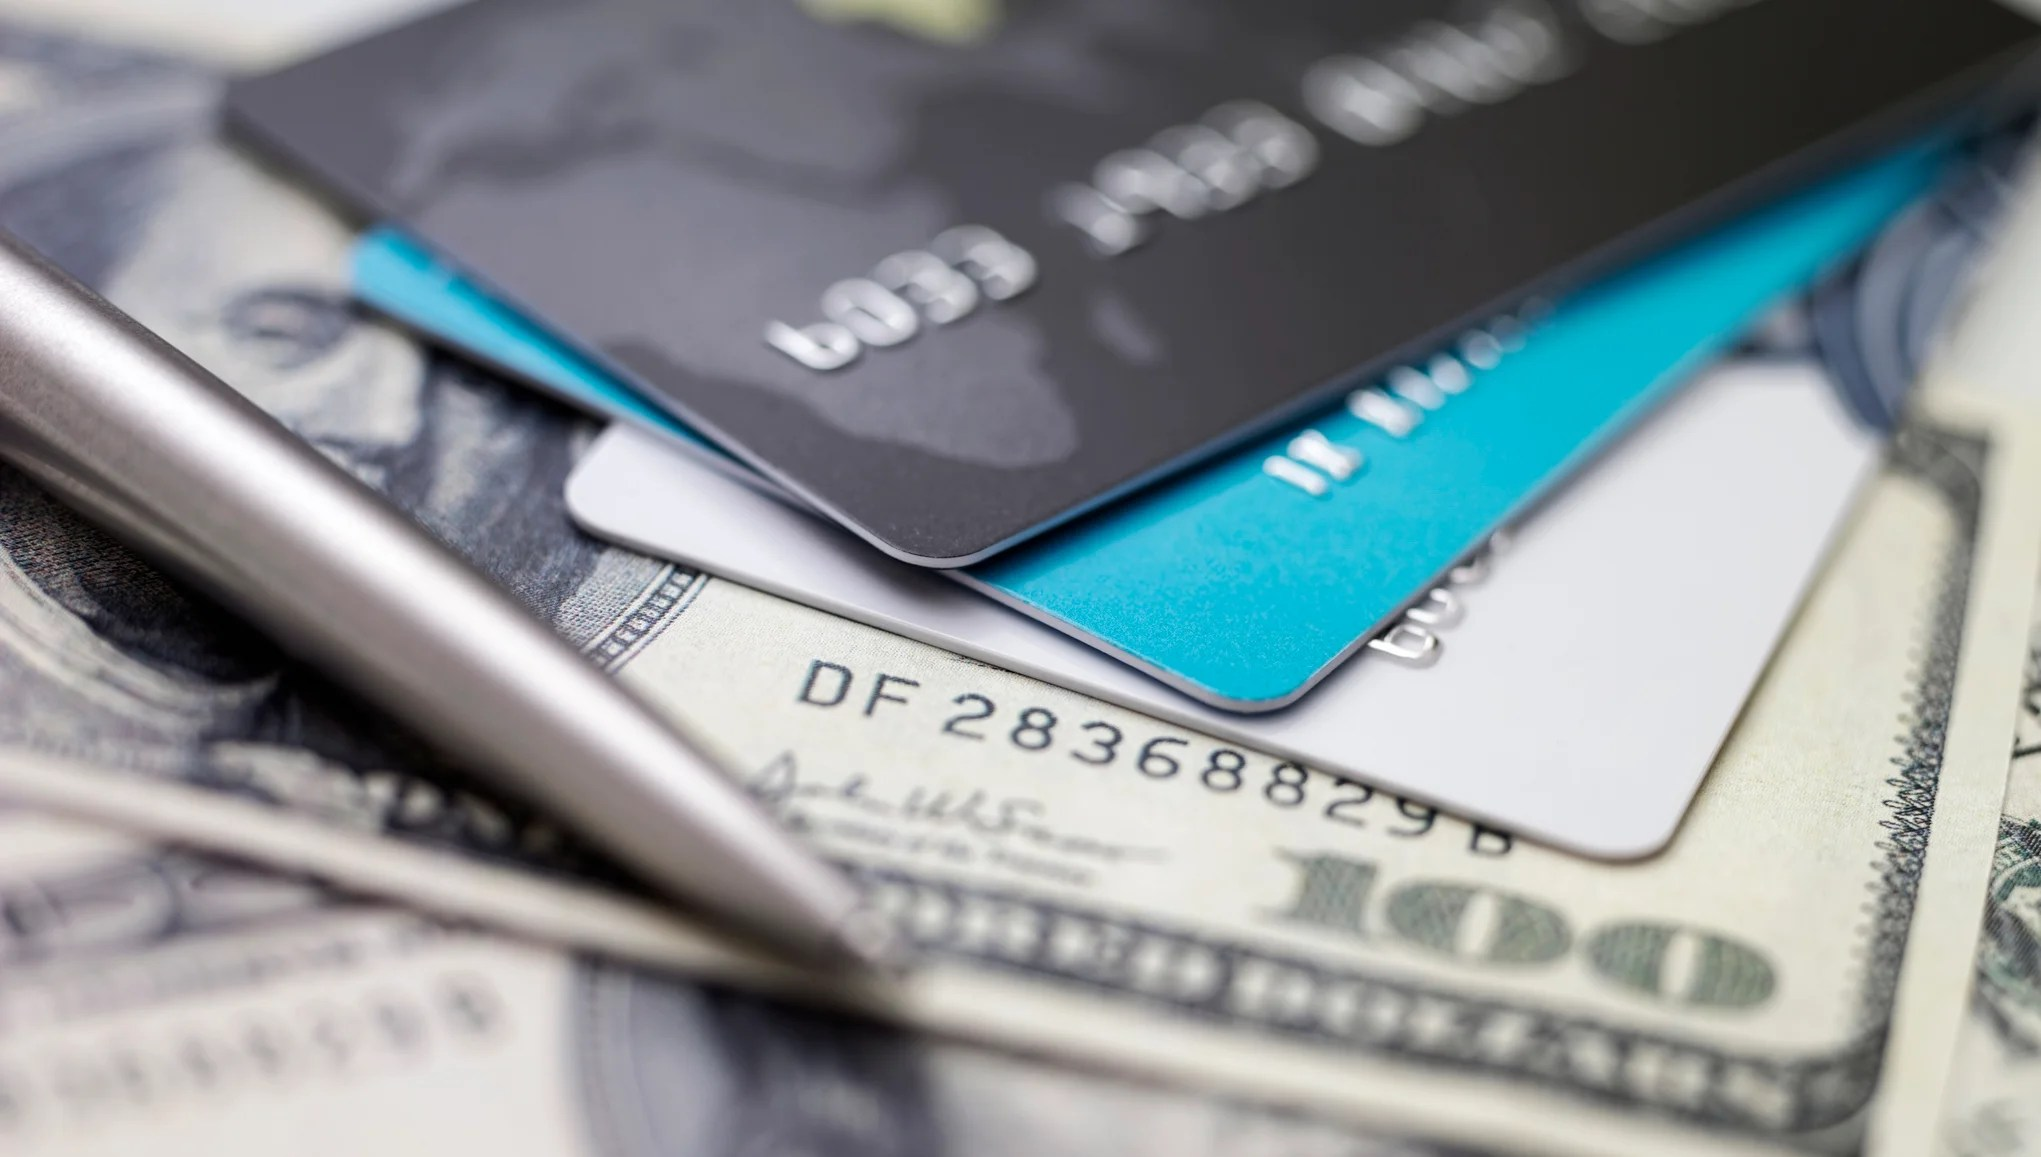 The Top 5 Business Cash-Back Credit Cards